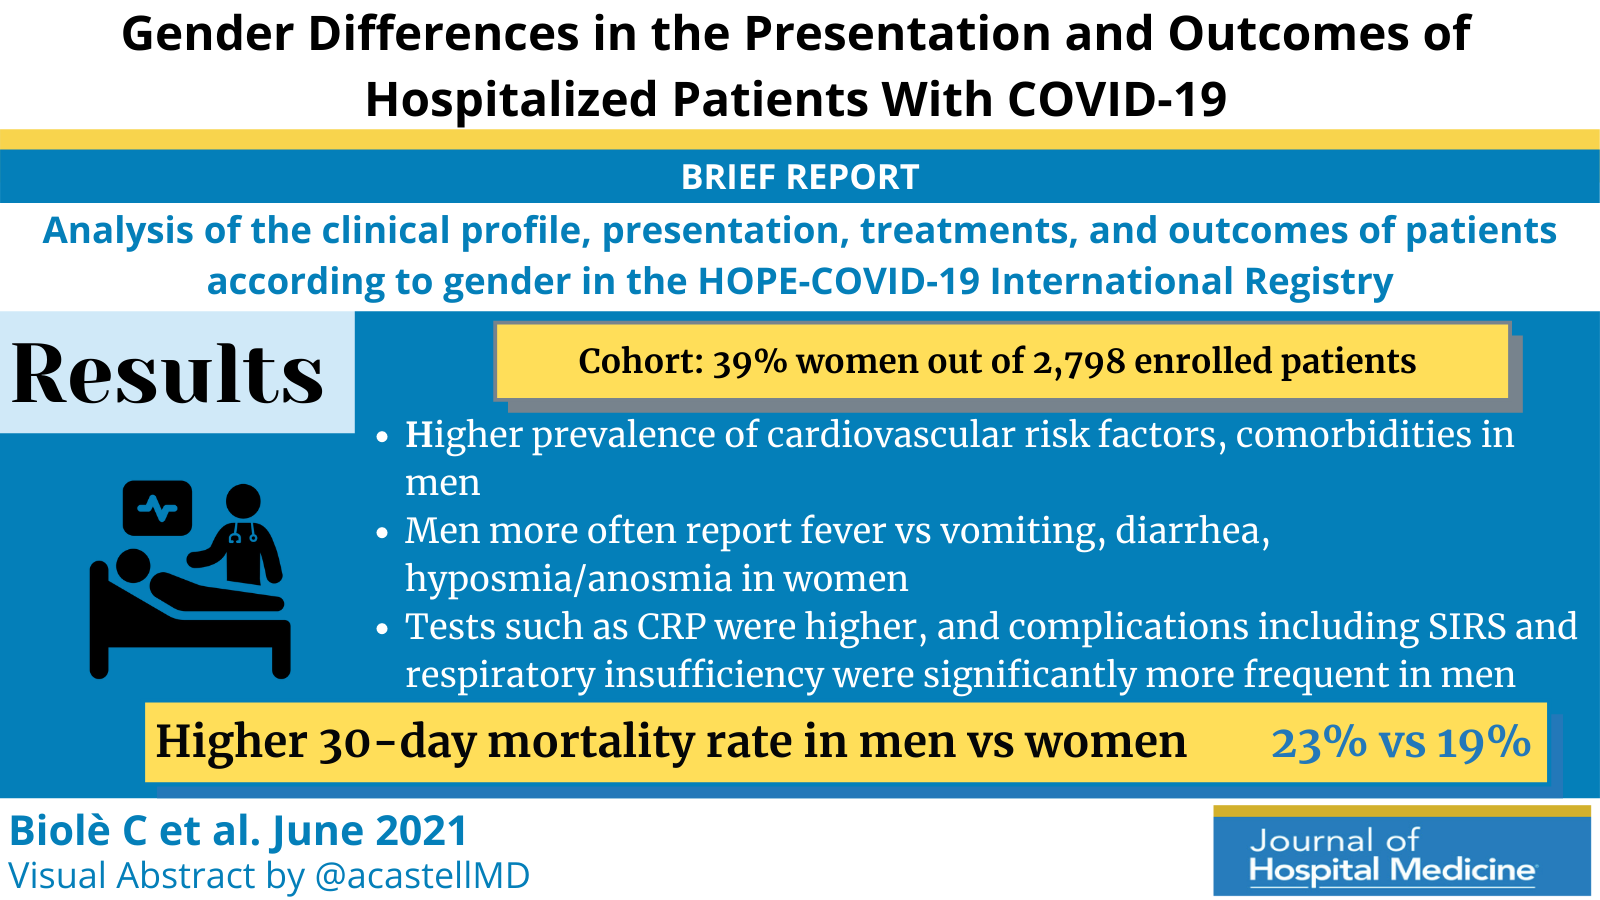 Gender Differences in the Presentation and Outcomes of Hospitalized Patients With COVID-19